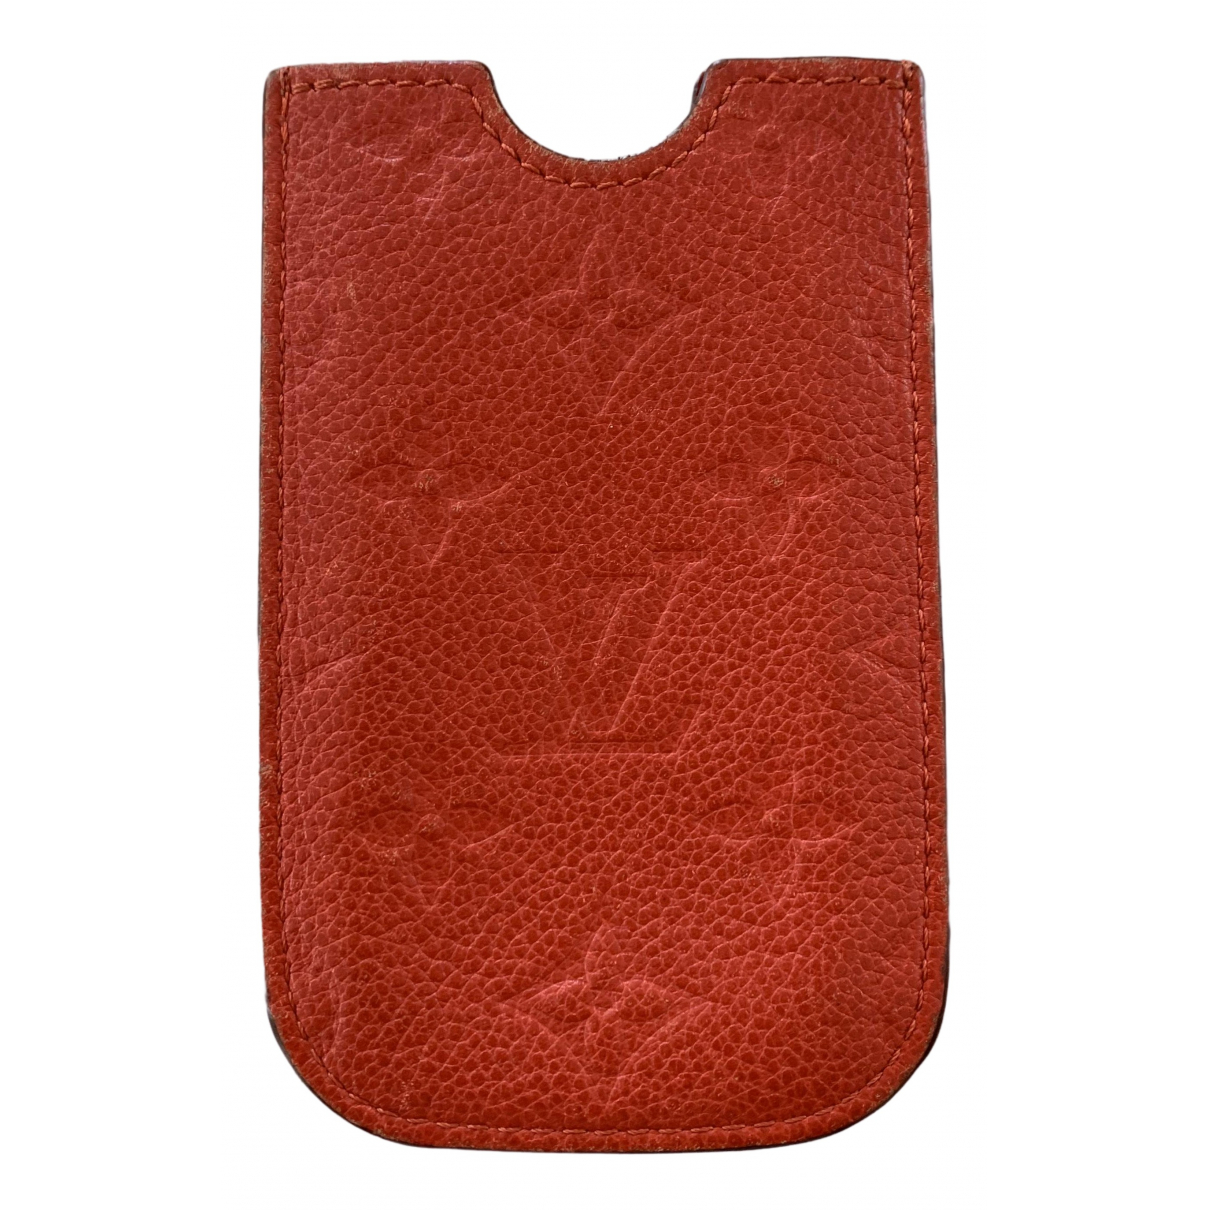 Louis Vuitton \N Red Leather Accessories for Life & Living \N